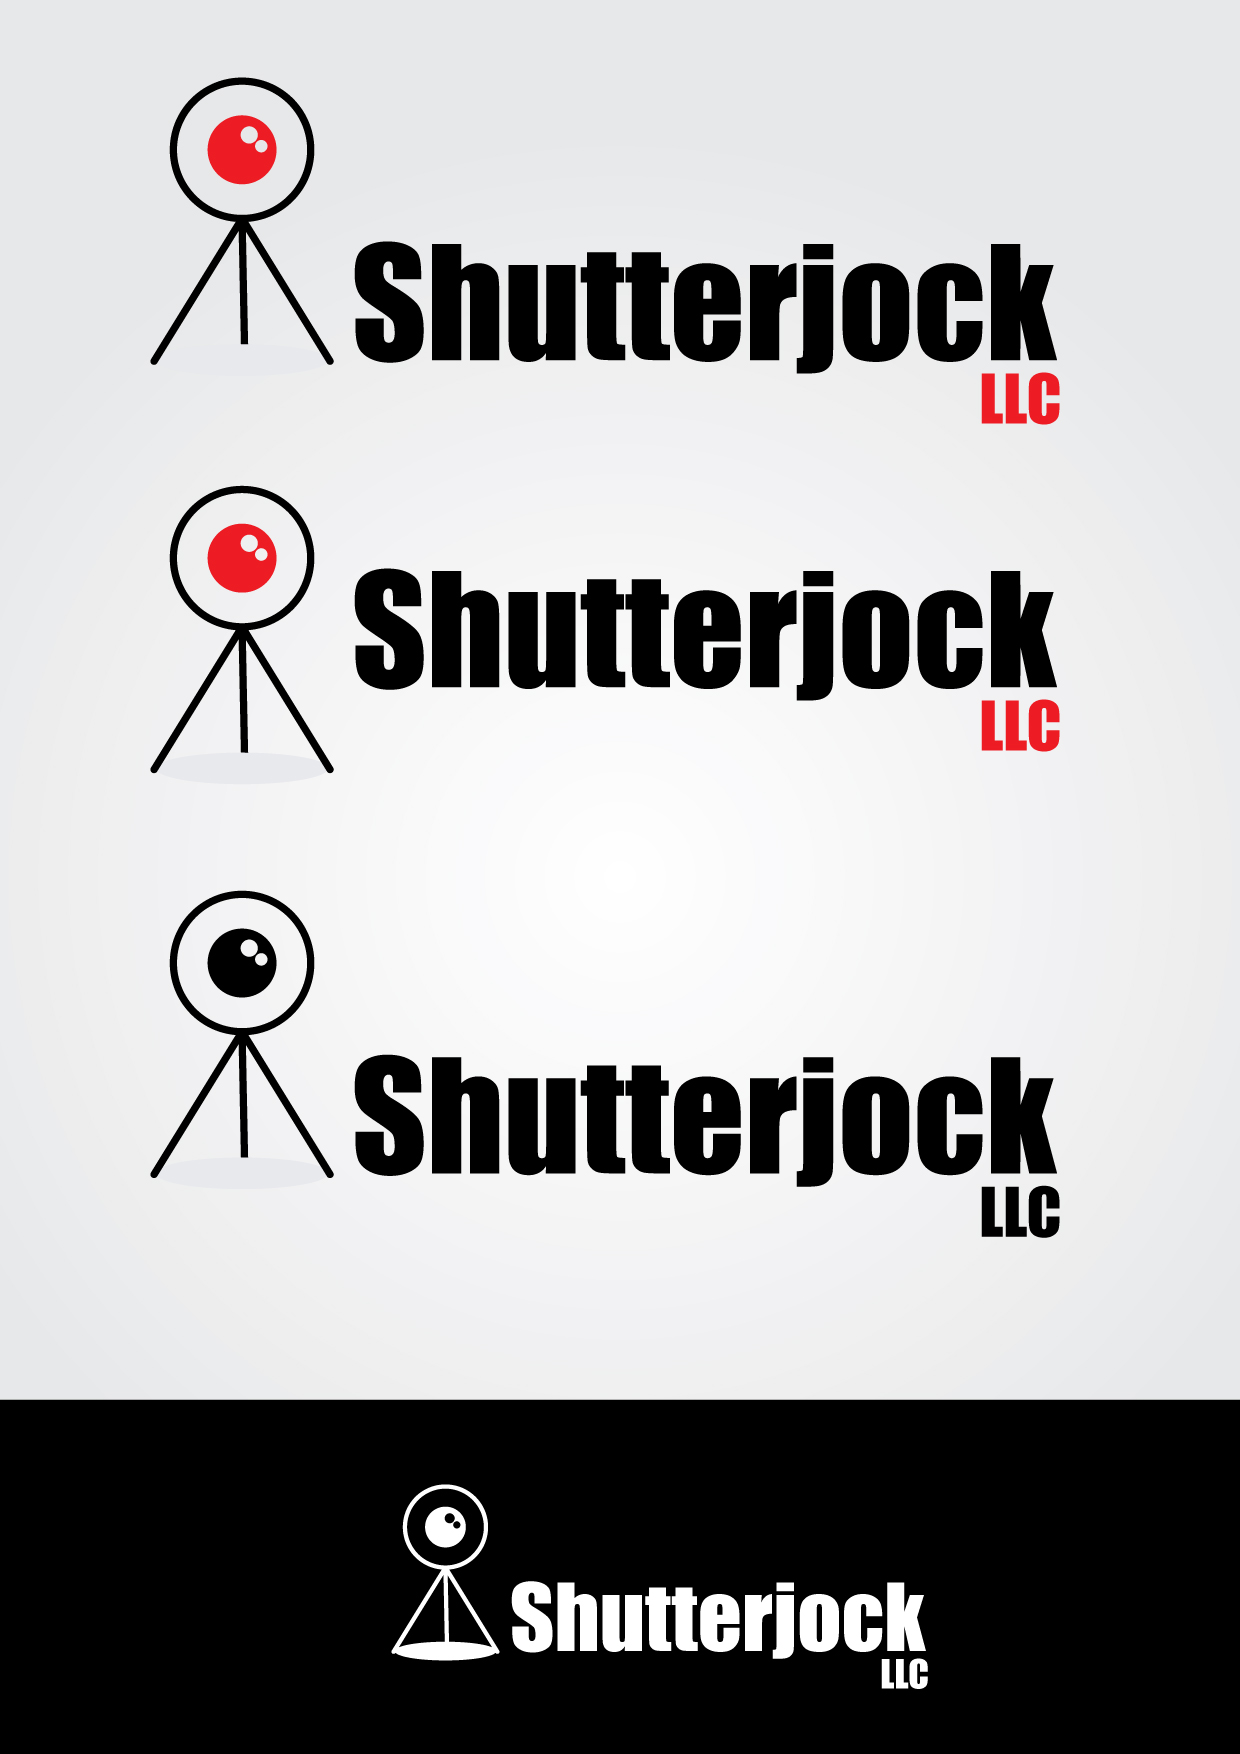 Logo Design by mediaproductionart - Entry No. 58 in the Logo Design Contest Unique Logo Design Wanted for Shutterjock LLC.